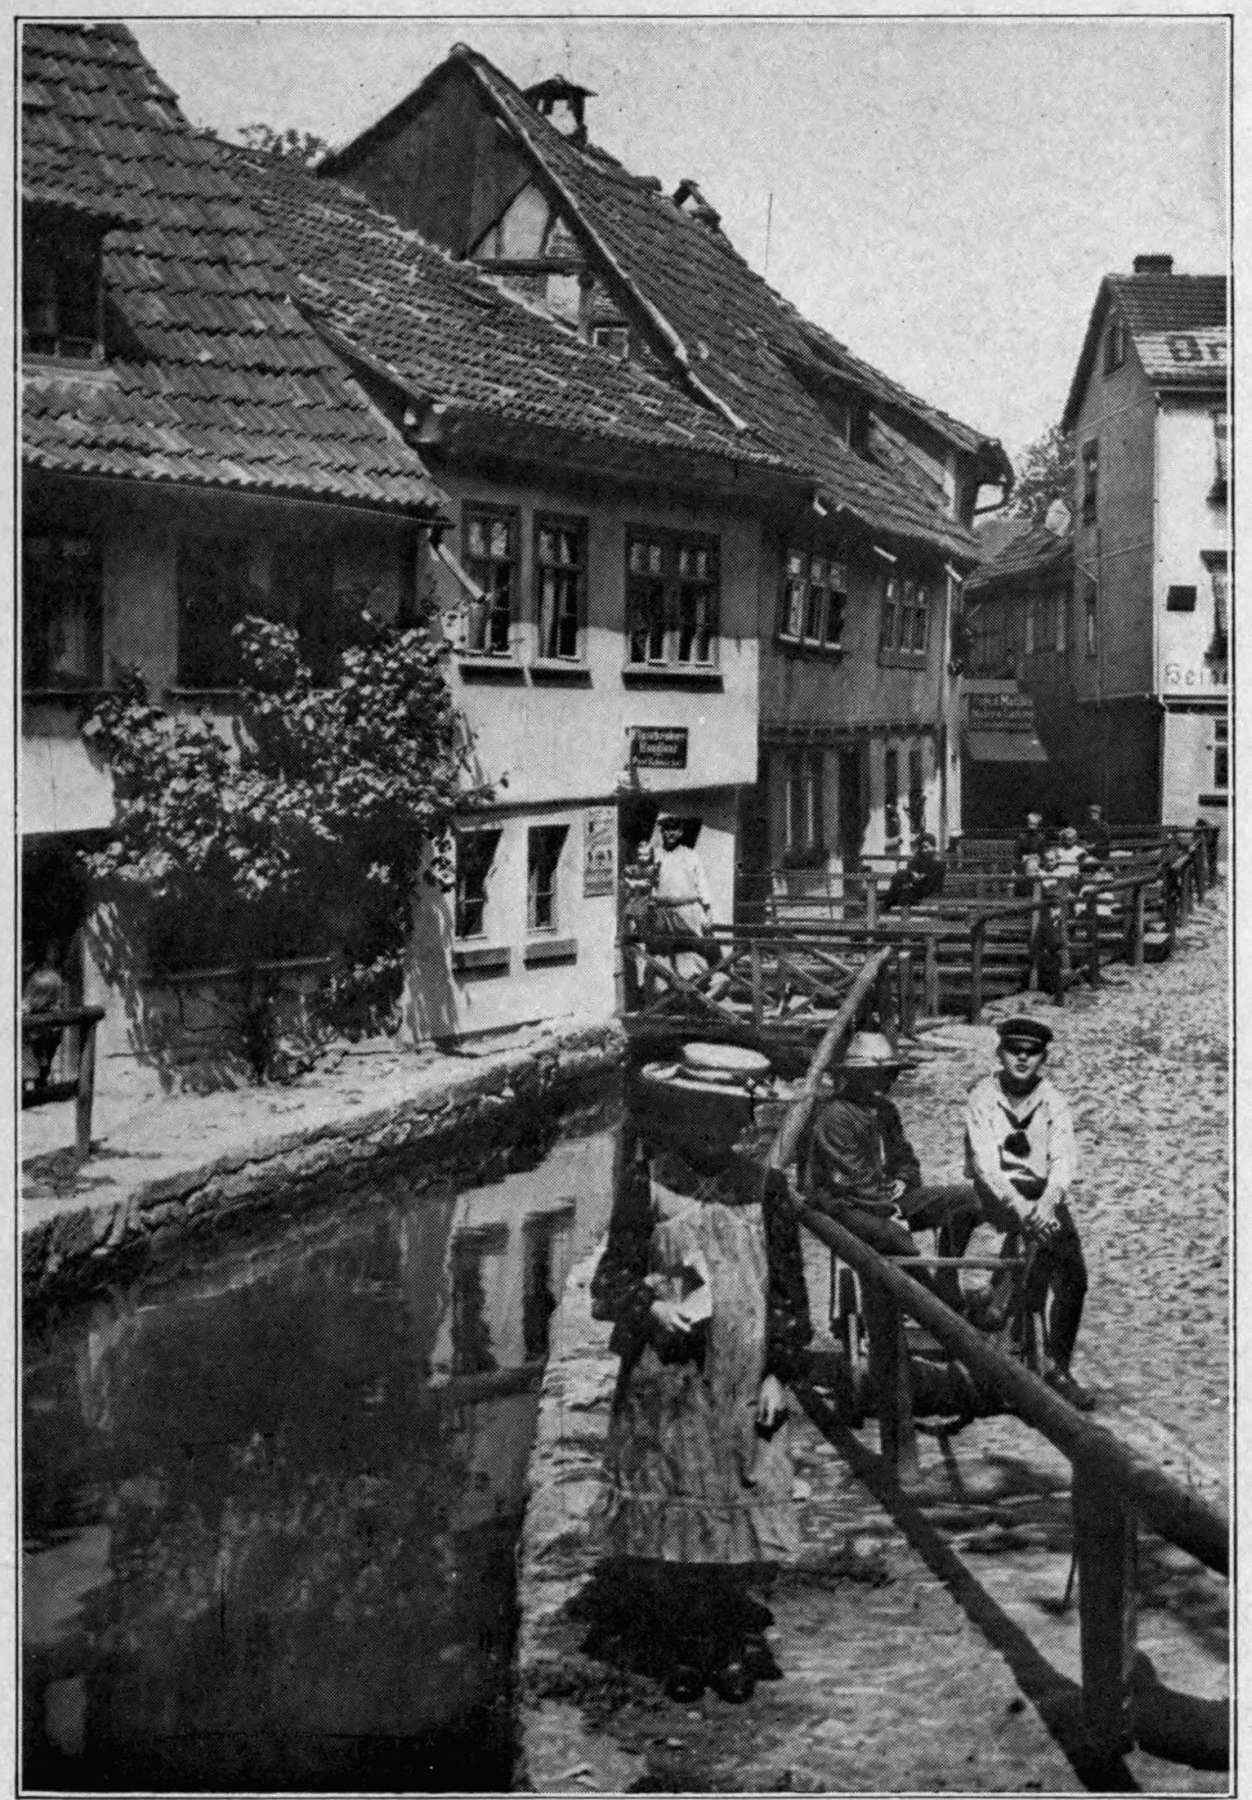 The project gutenberg ebook of the iron ration by george abel schreiner copyright by underwood underwood n y street scene at eisenbach southern germany from the nvjuhfo Images